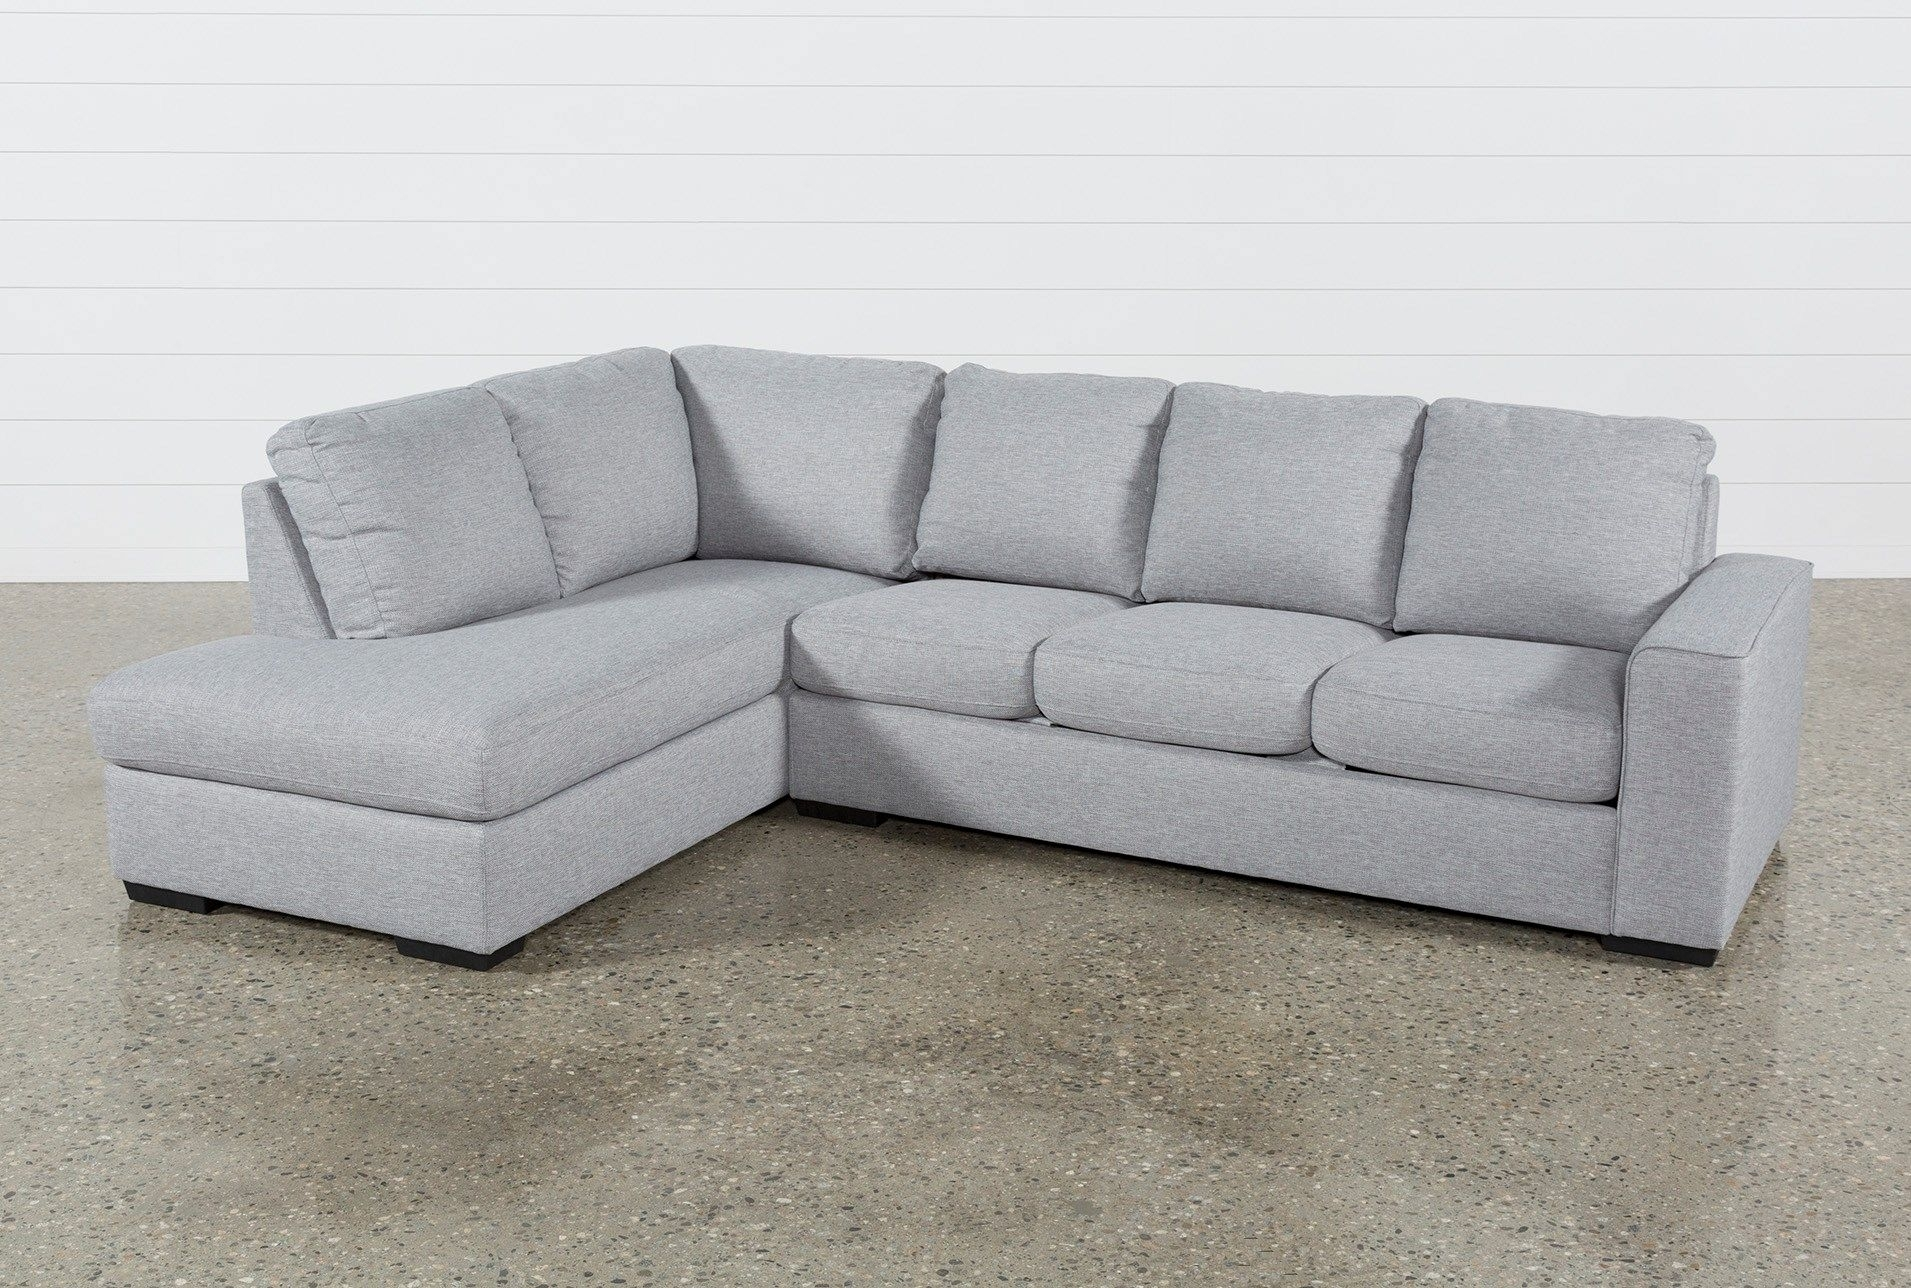 Lucy Grey 2 Piece Sectional W/laf Chaise | Tx House | Pinterest intended for Lucy Grey 2 Piece Sectionals With Laf Chaise (Image 21 of 30)